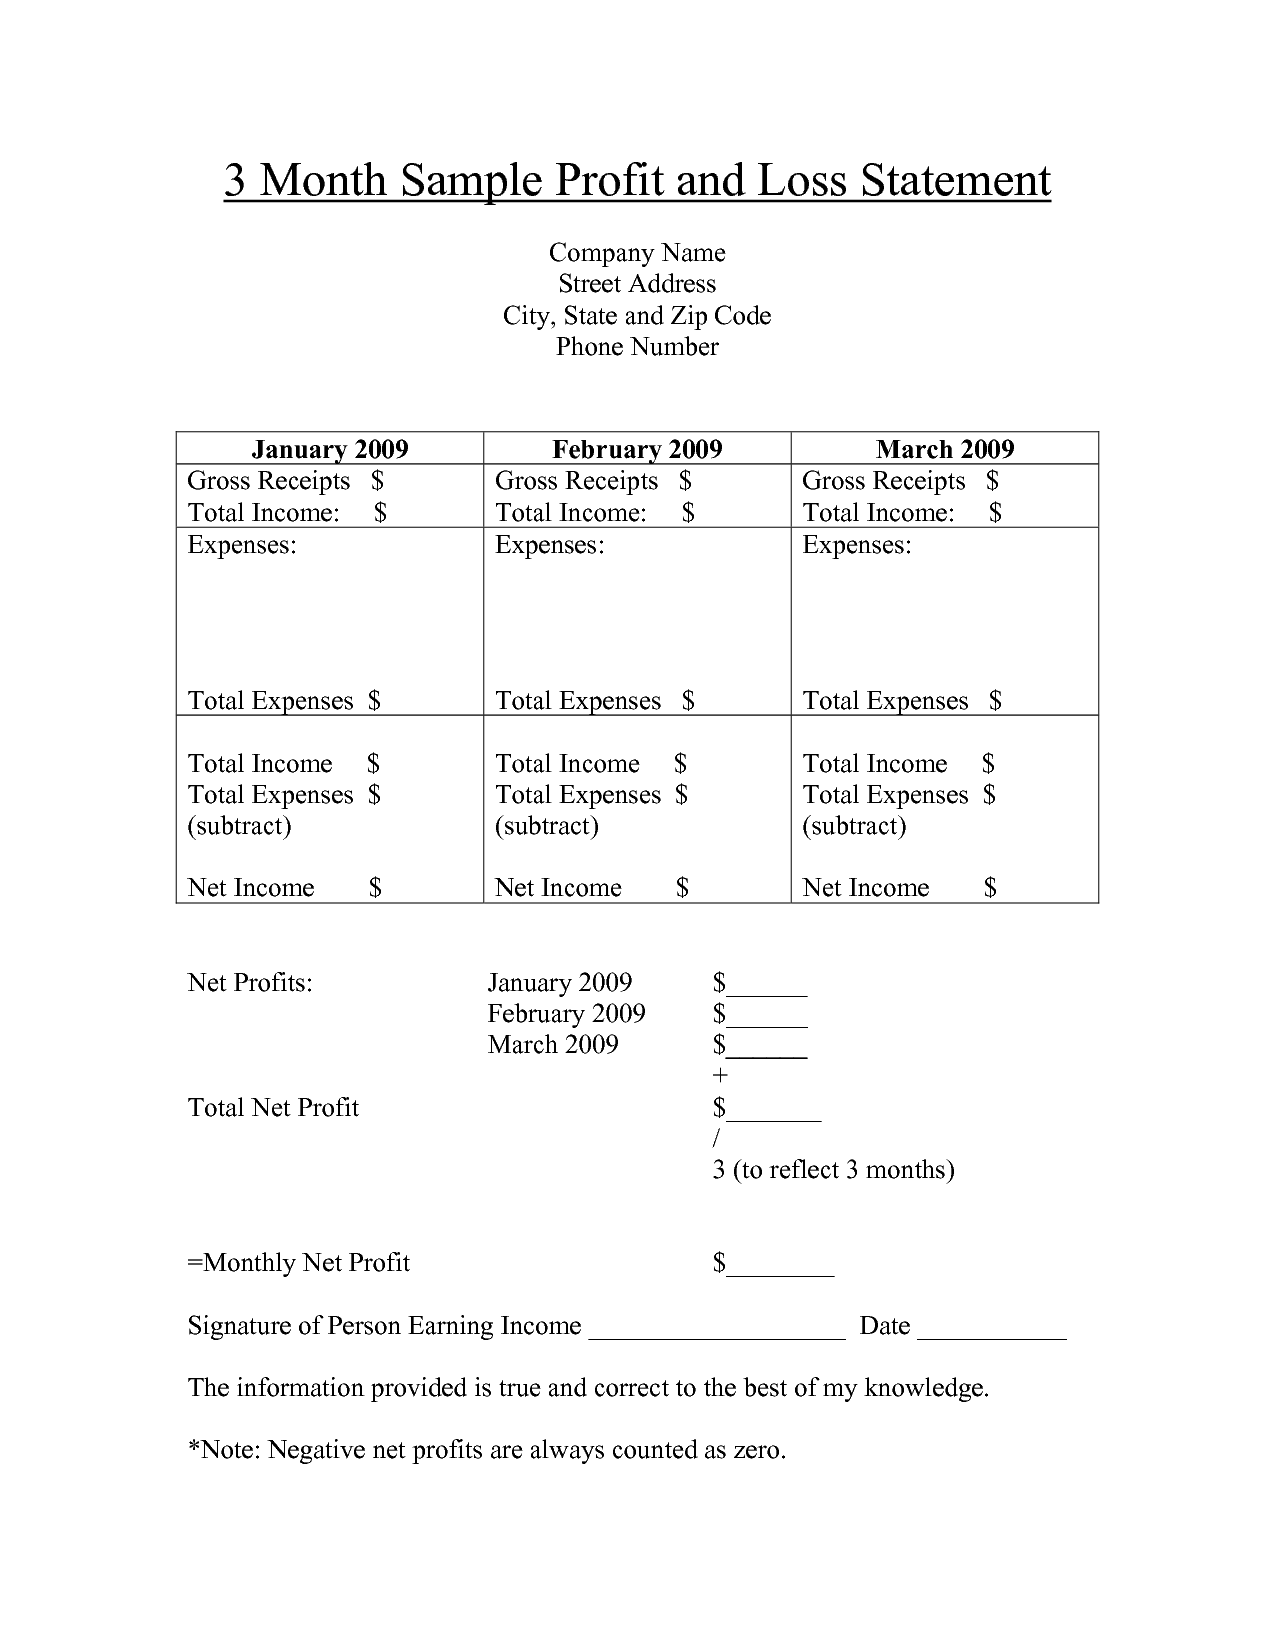 Free Printable Profit And Loss Statement Form For Home Care   Bing Images  Business Profit And Loss Statement Form